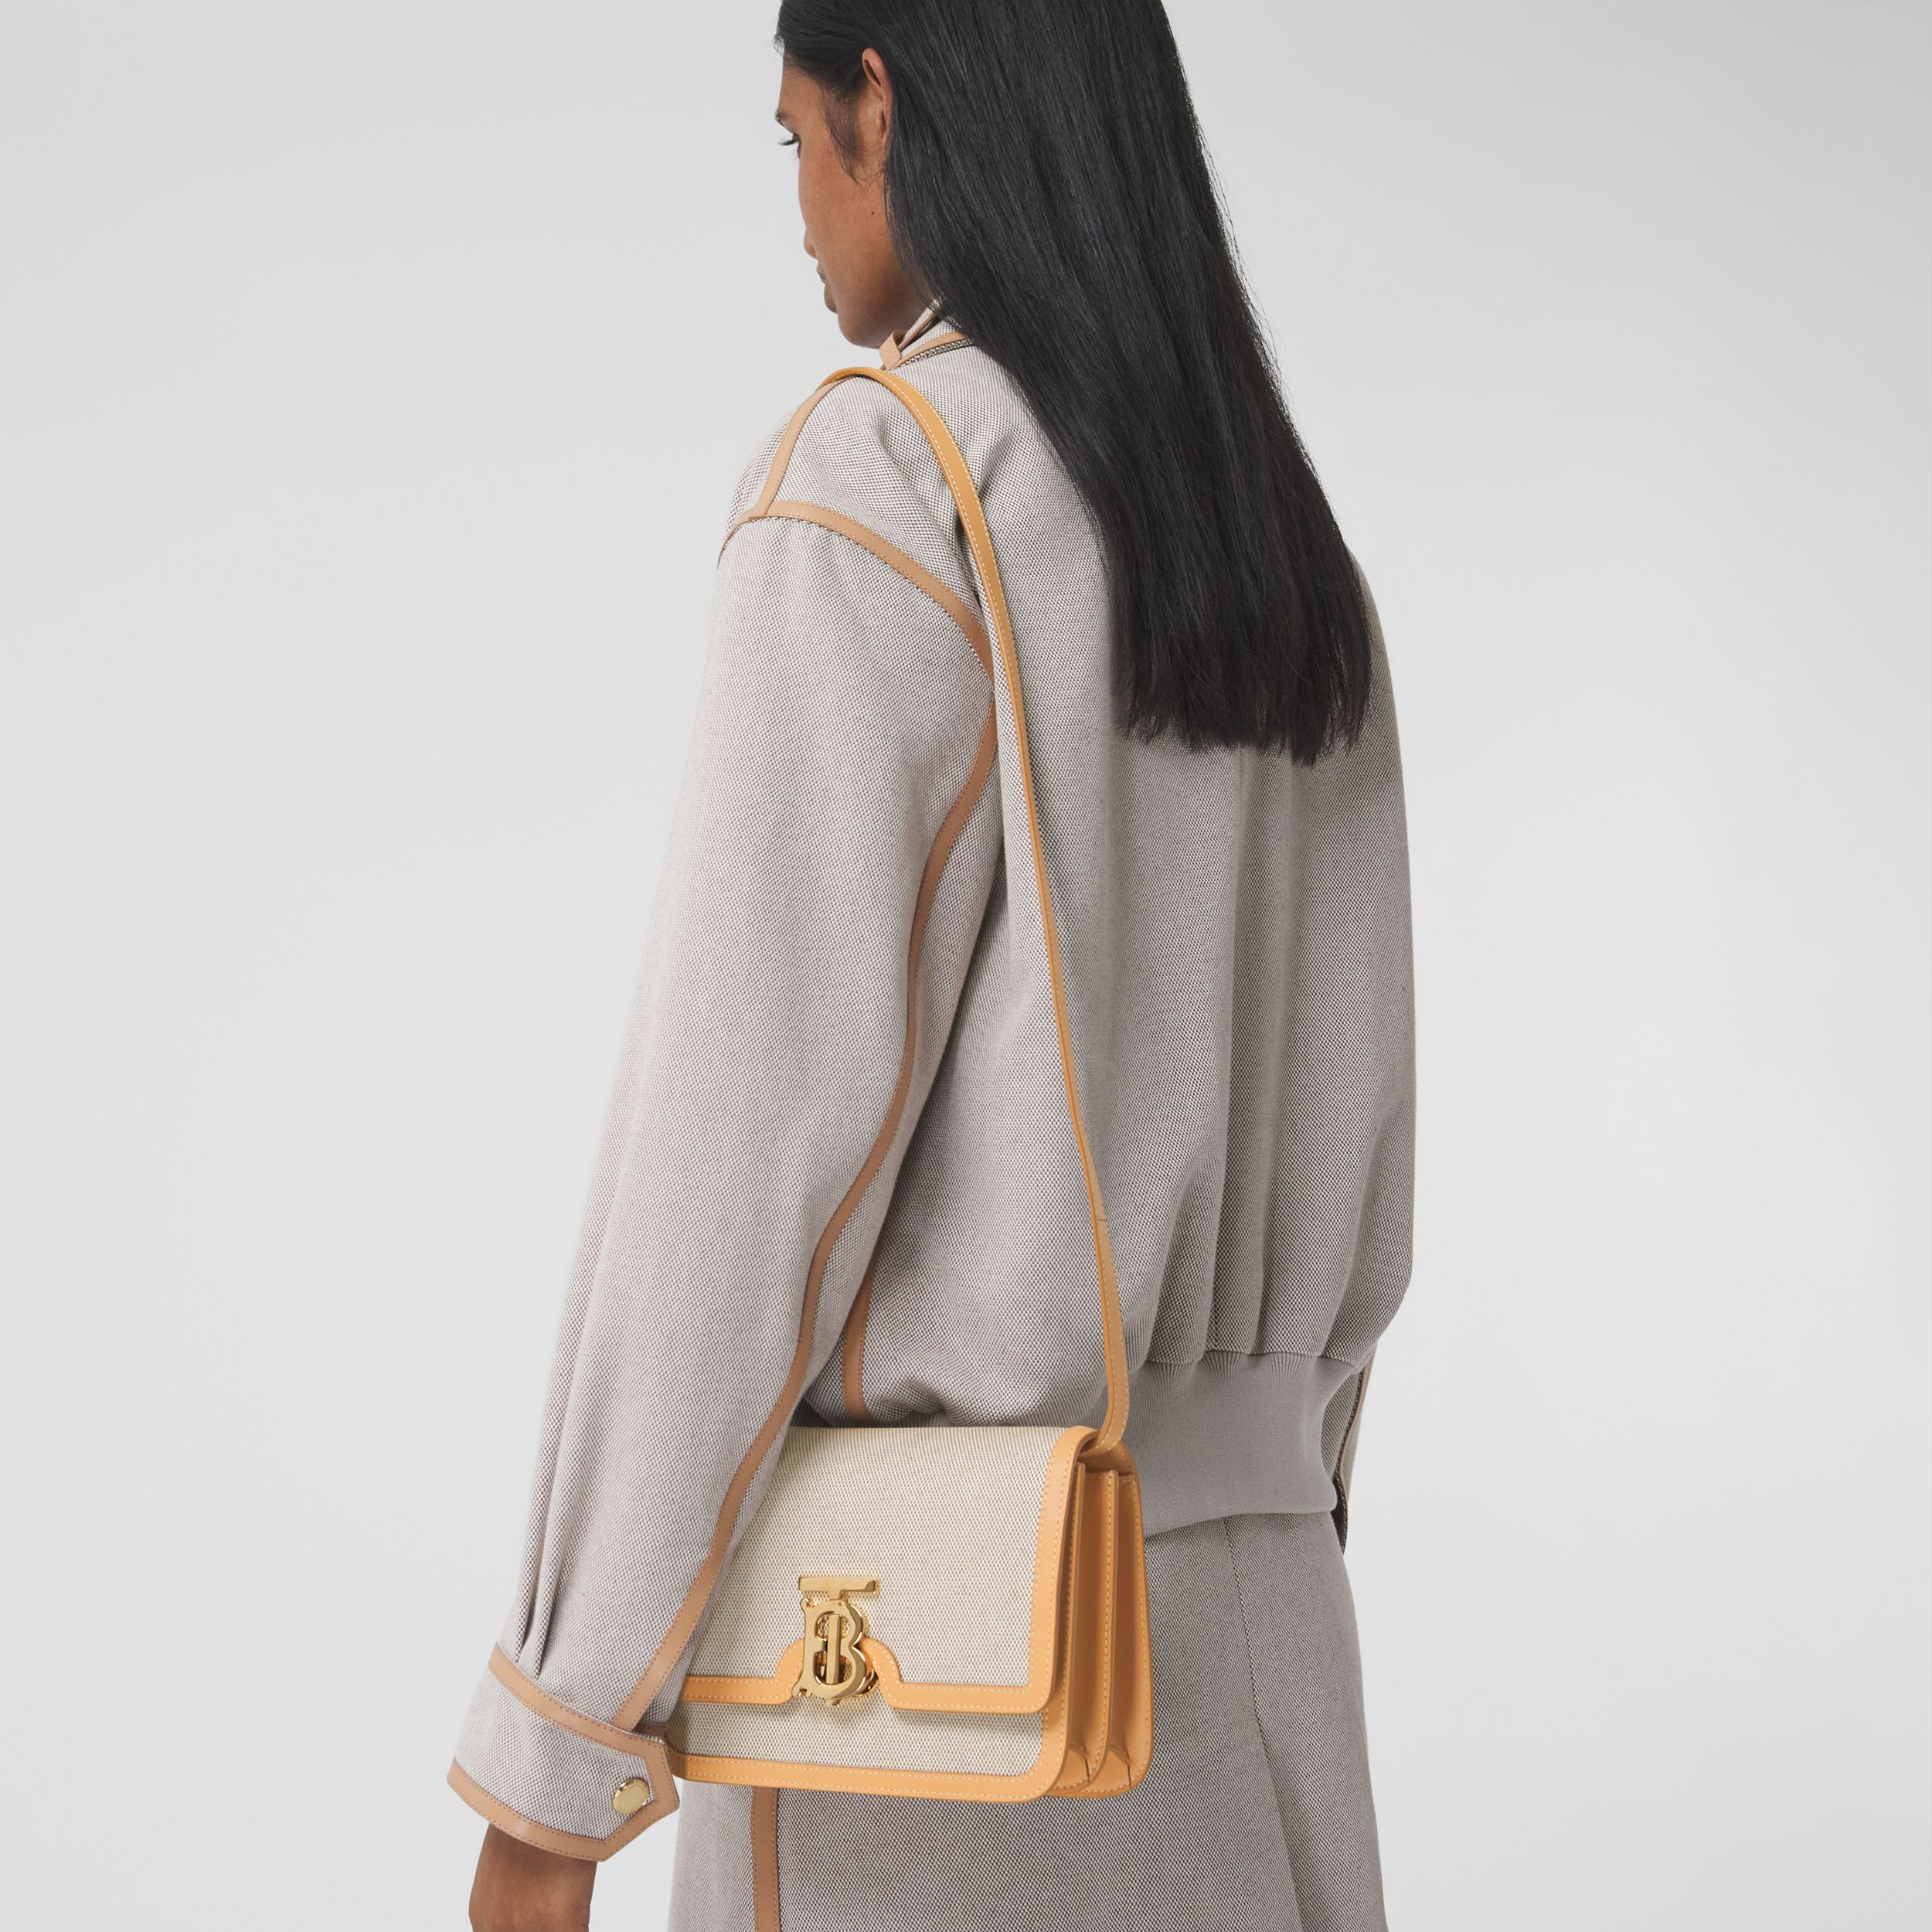 Small Two-tone Canvas and Leather TB Bag in Soft Fawn/warm Sand - Women | Burberry - 3